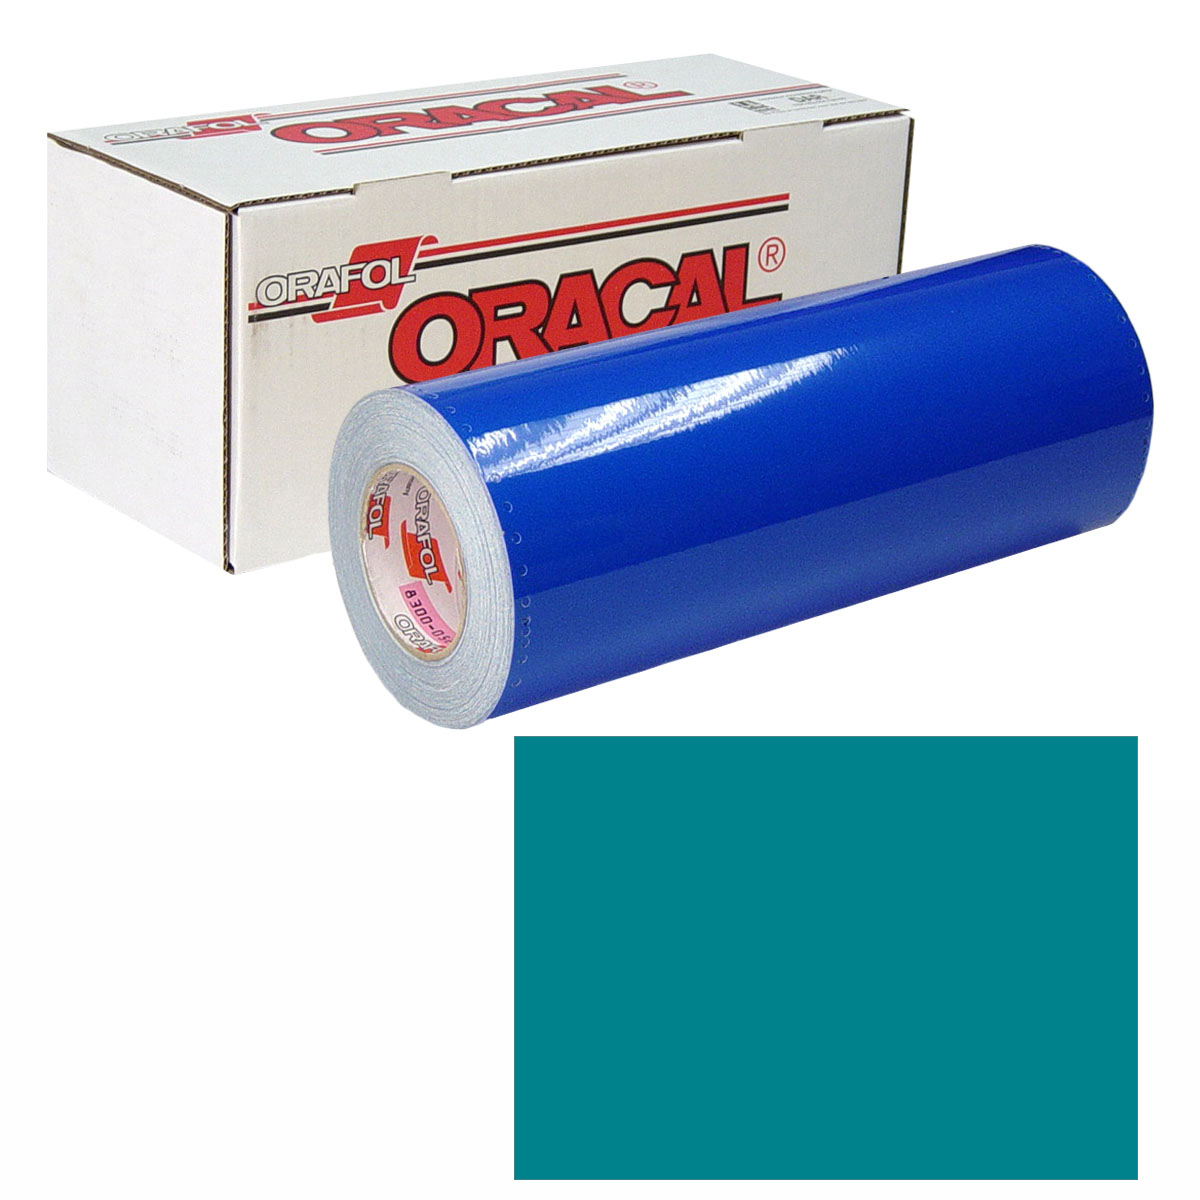 ORACAL 631 30in X 50yd 066 Turquoise Blue